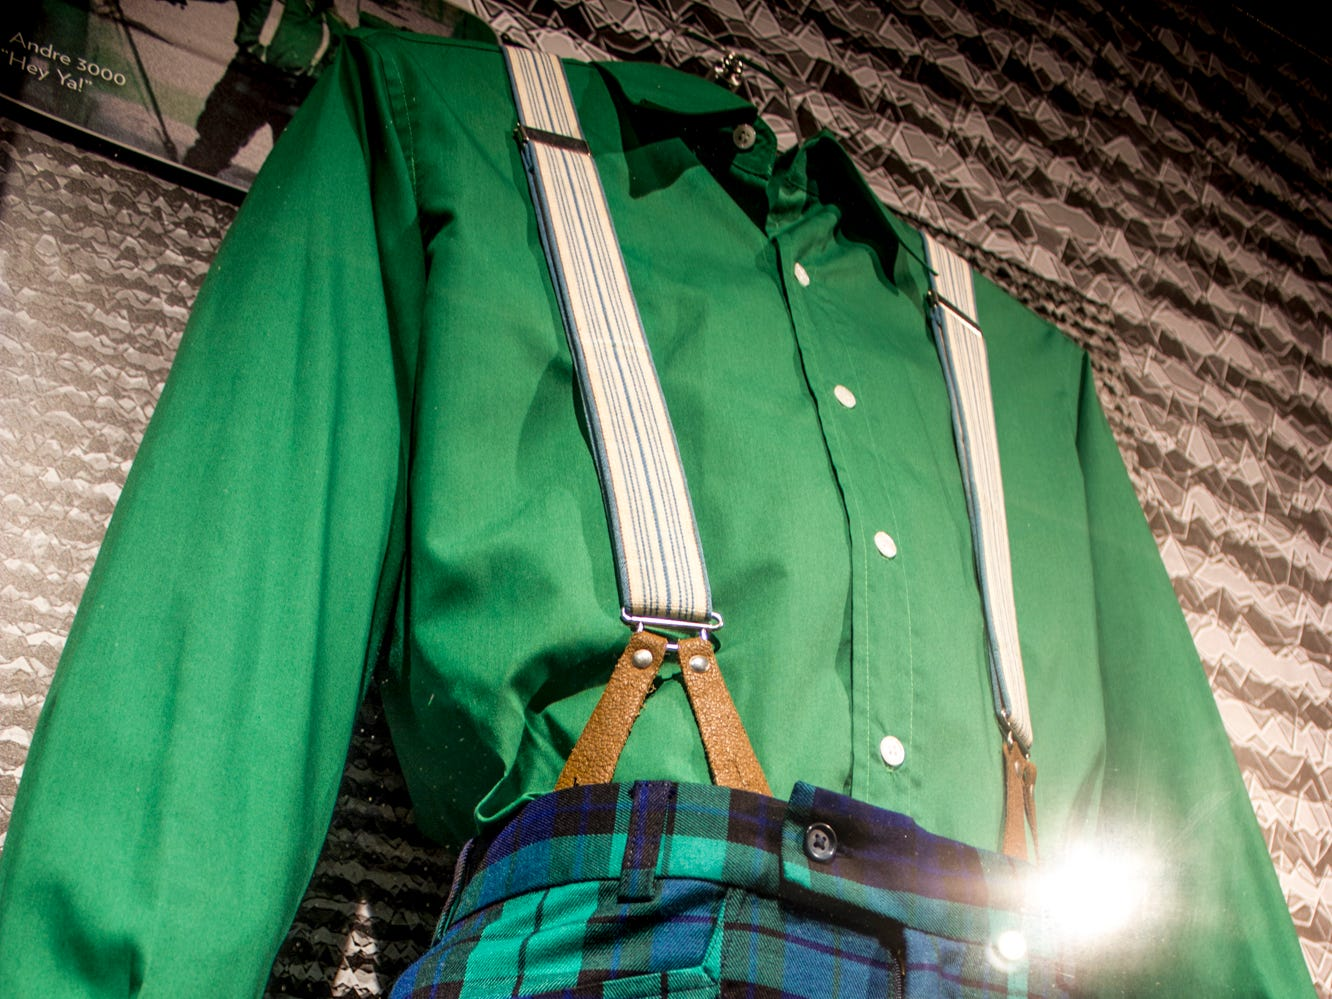 """Part of the """"Stay Tuned: Rock on TV"""" exhibit at the Rock & Roll Hall of Fame, Andre 3000 wore this outfit in Outkast's music video for """"Hey Ya!"""" The video was inspired by the Beatles' debut performance on """"The Ed Sullivan Show."""""""